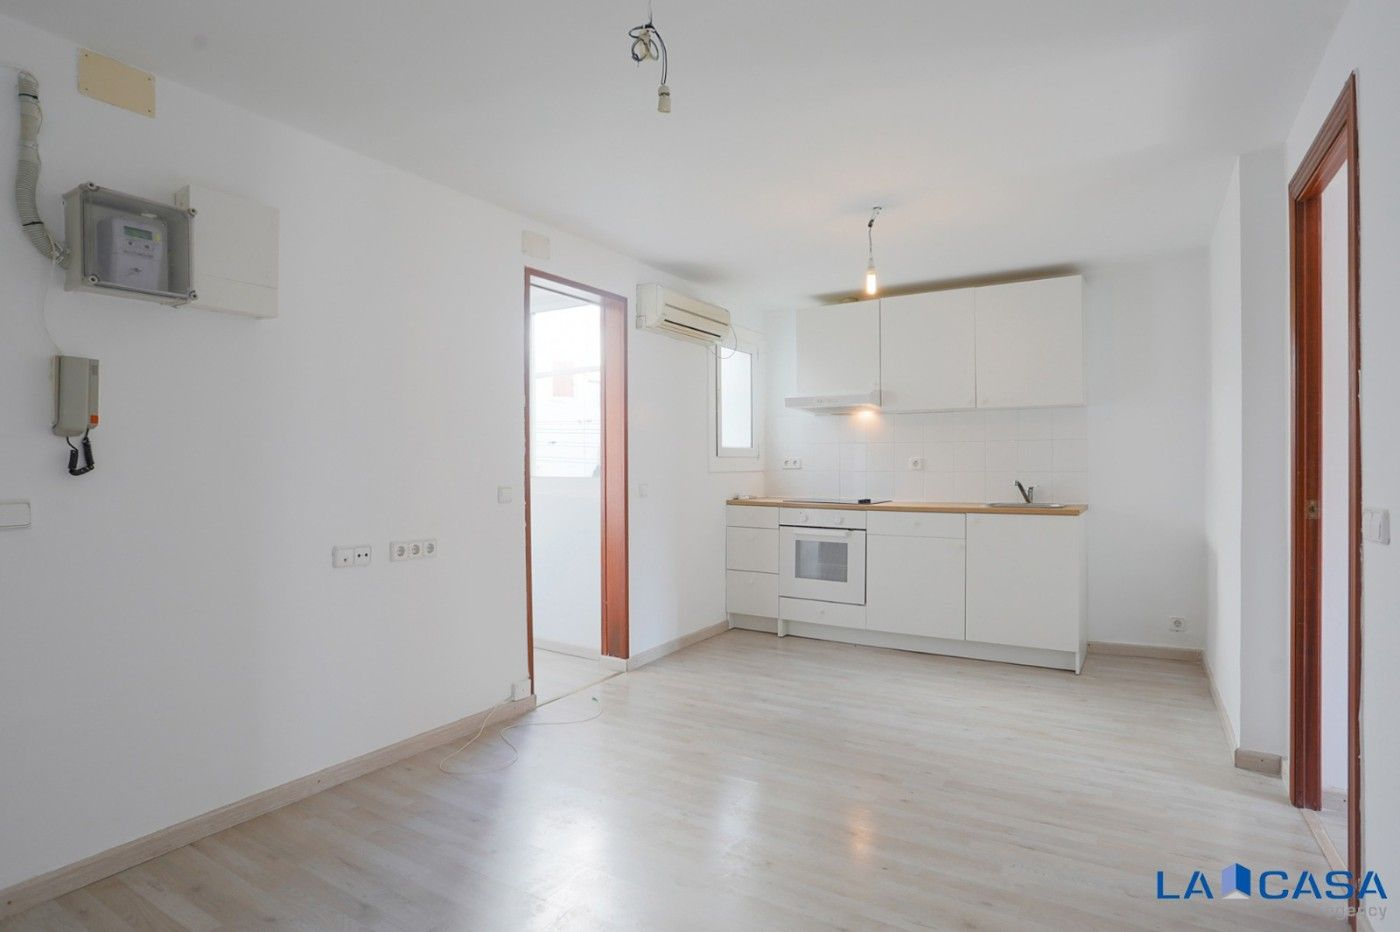 Apartment in Carrer mont, 39. Reformado a estrenar